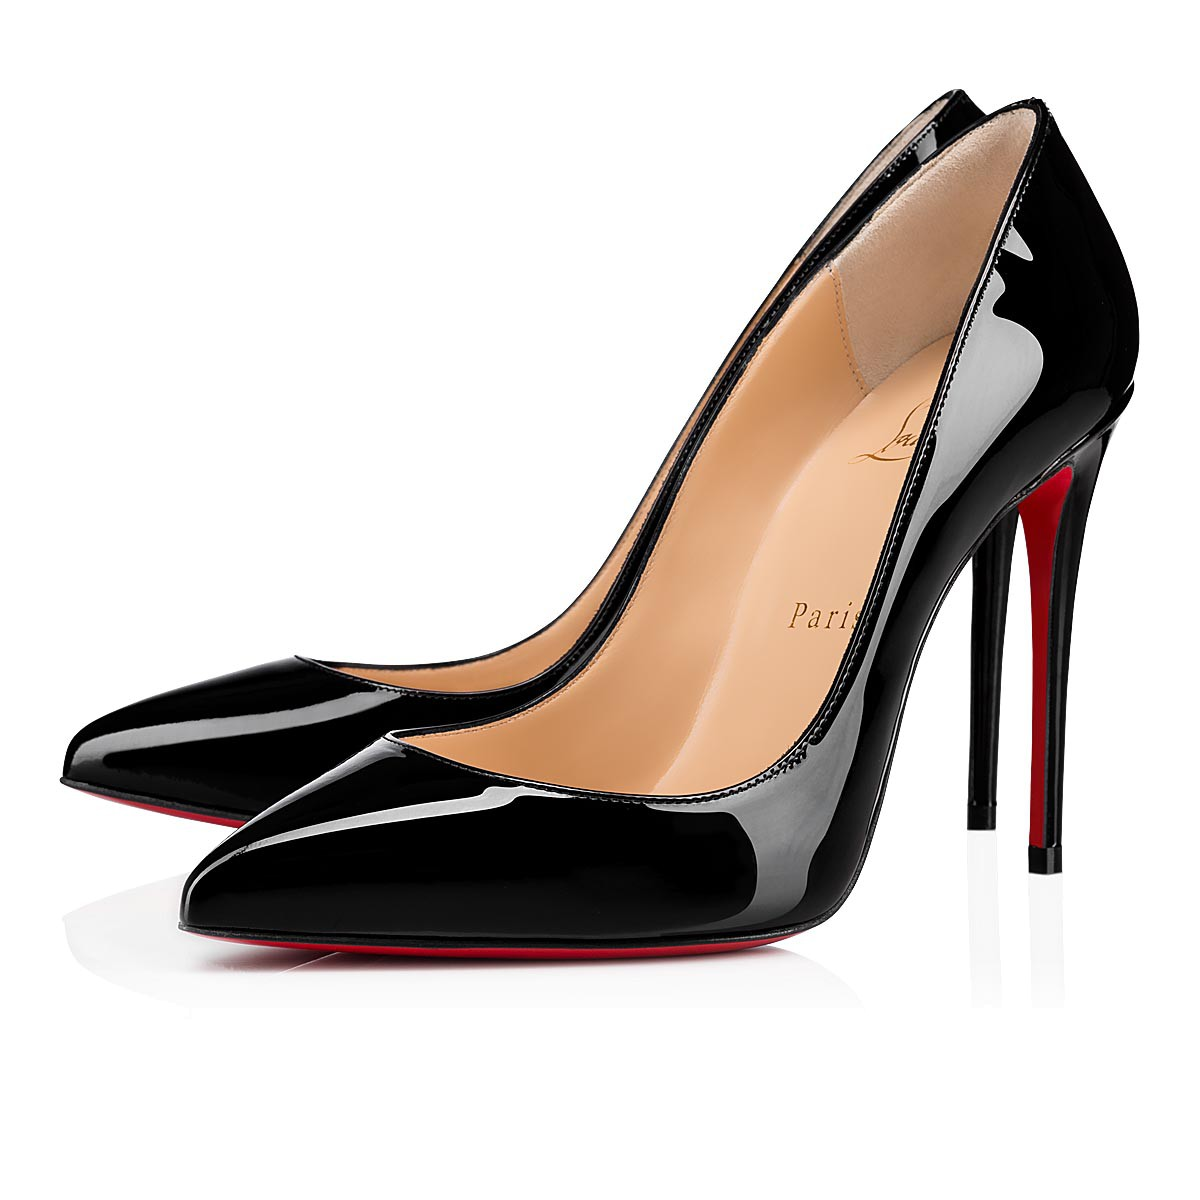 Women Shoes - Pigalle Follies - Christian Louboutin